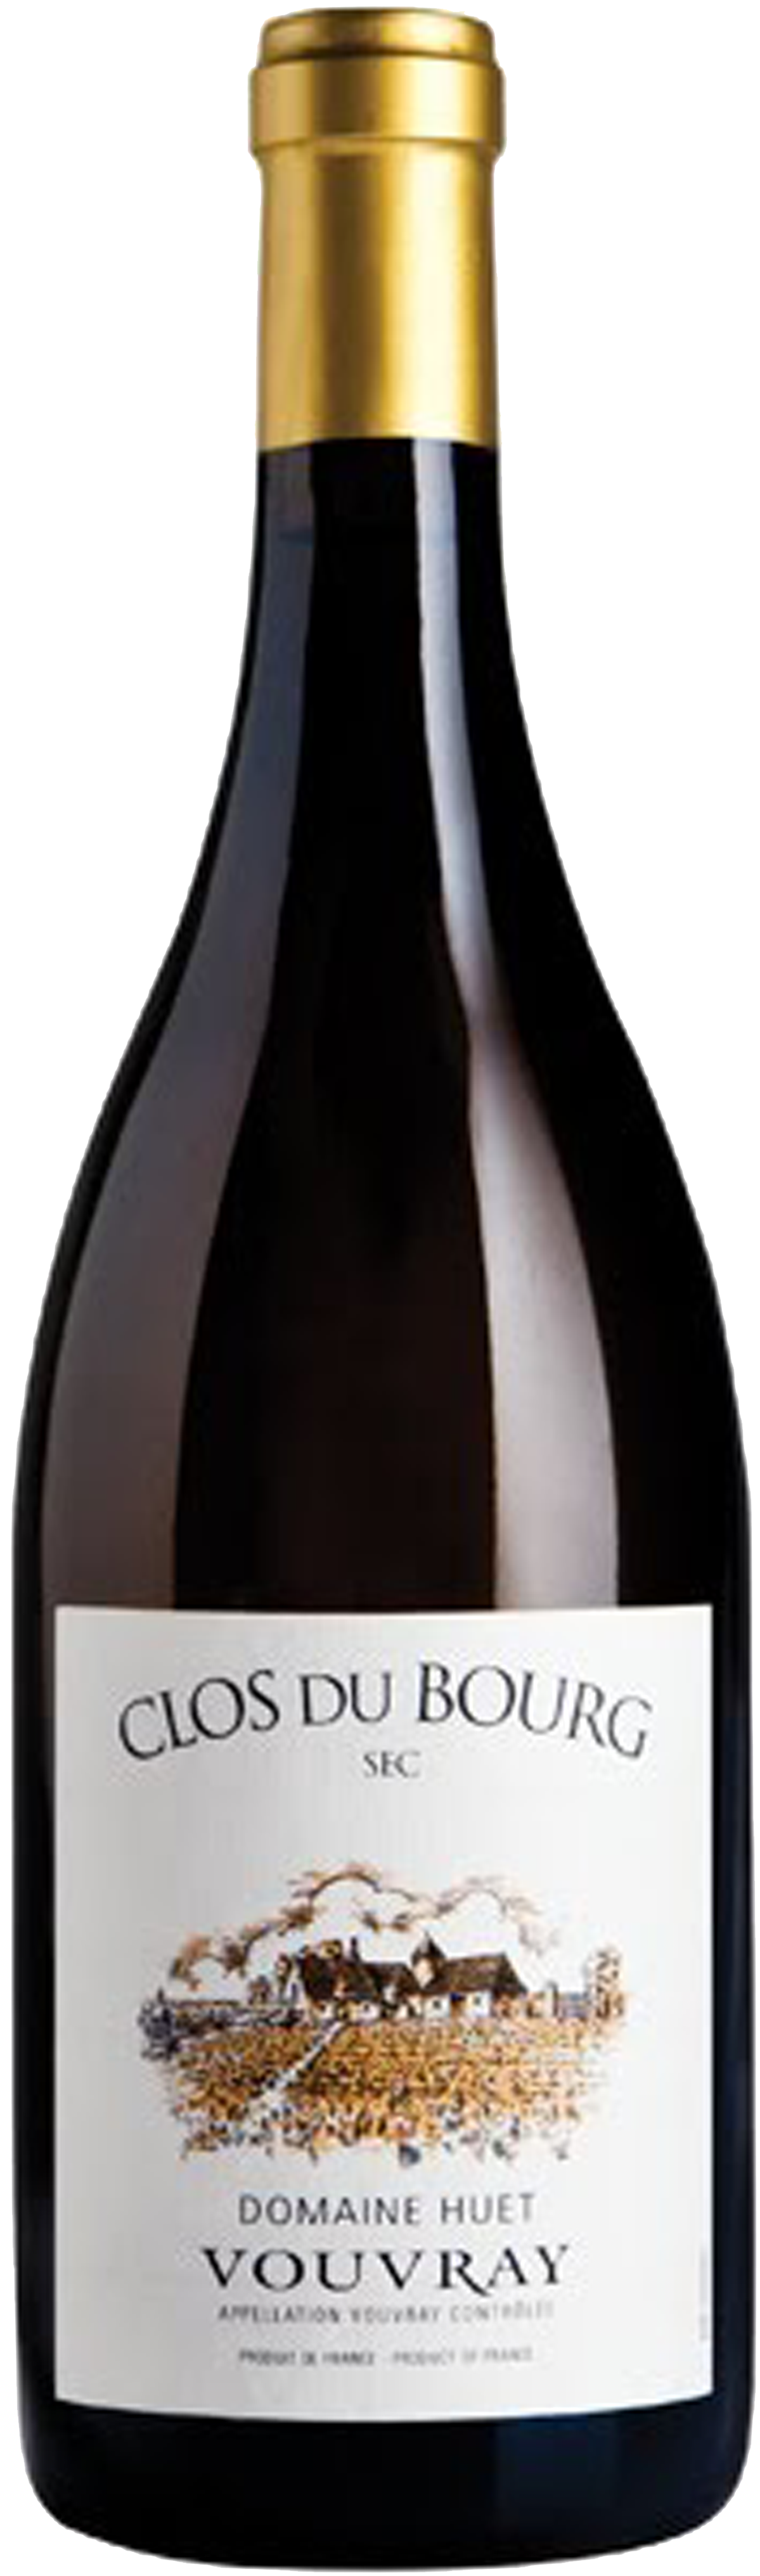 Image of product Vouvray Clos du Bourg Sec